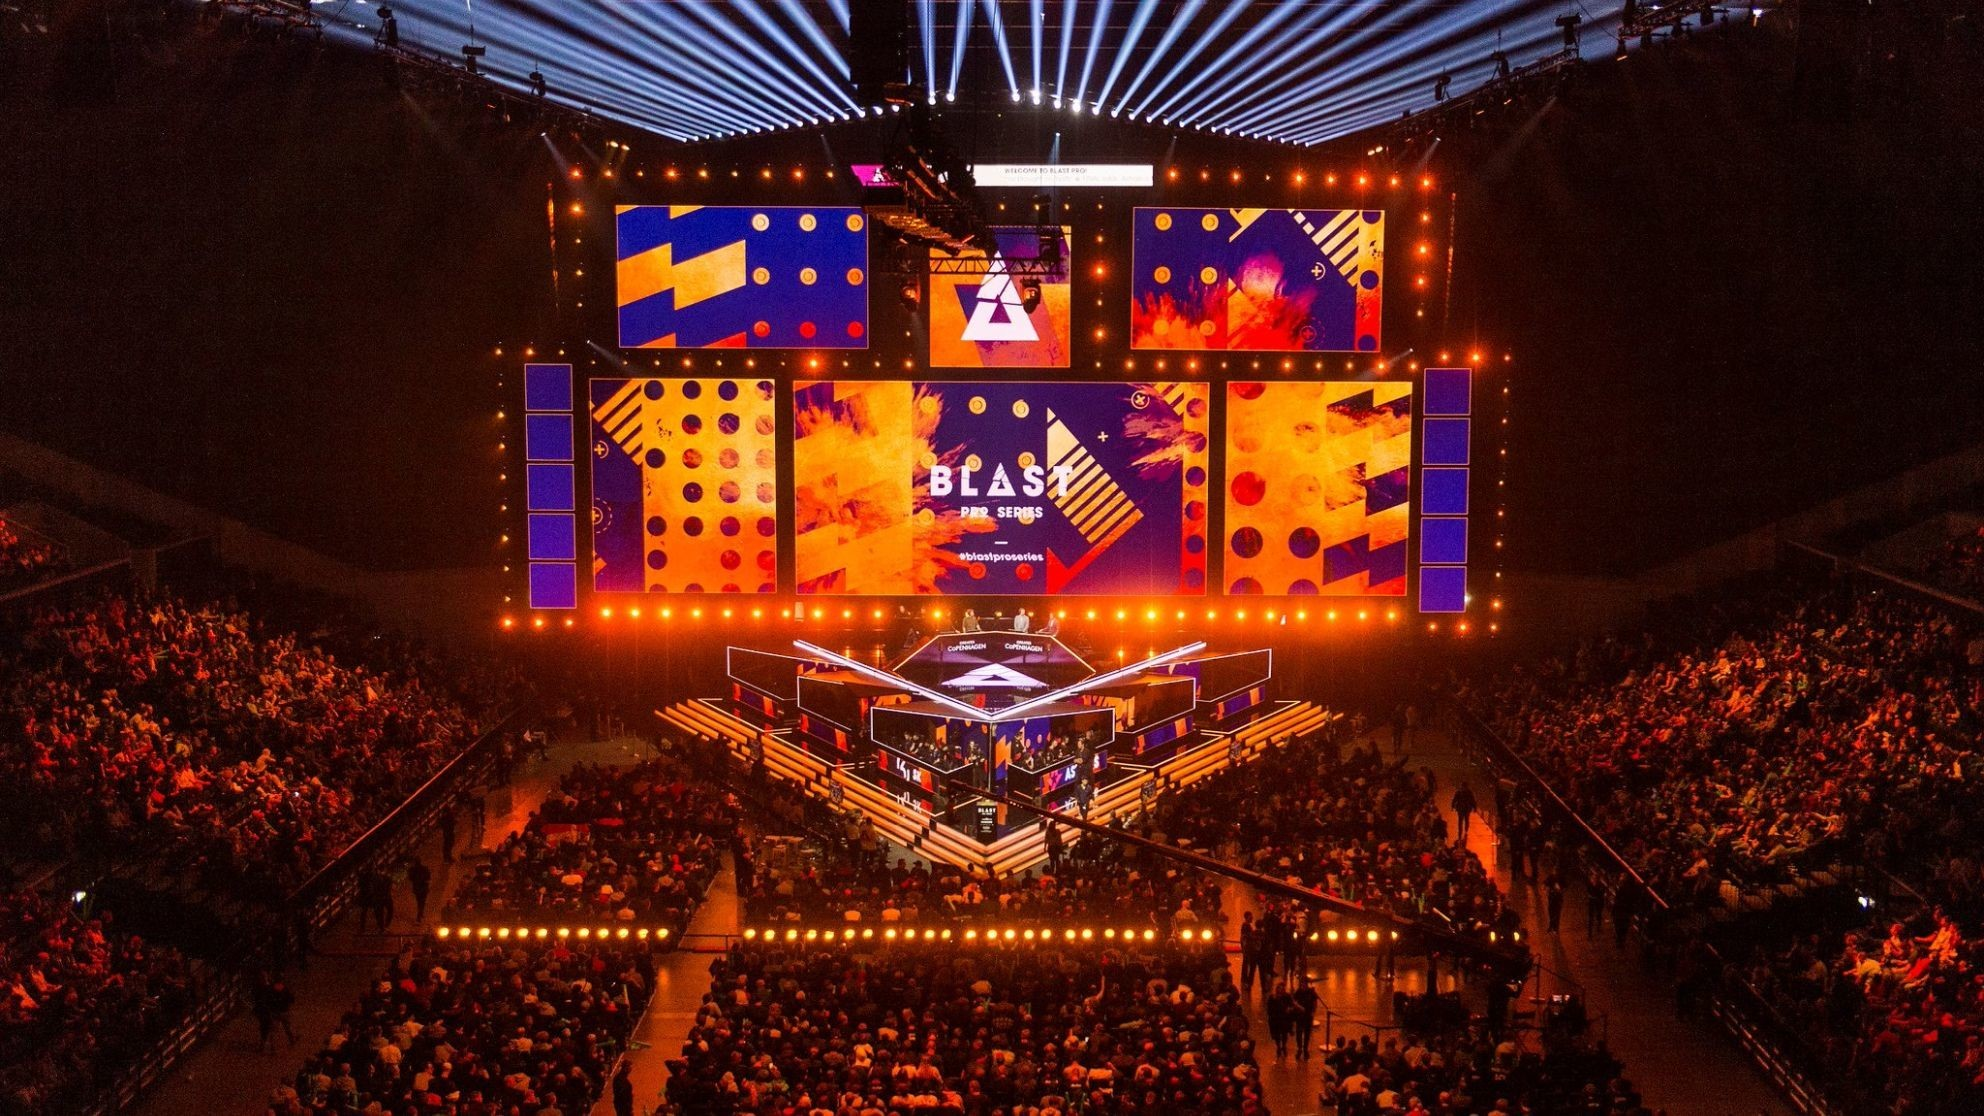 Blast Pro Series has announced next four stops in upcoming months